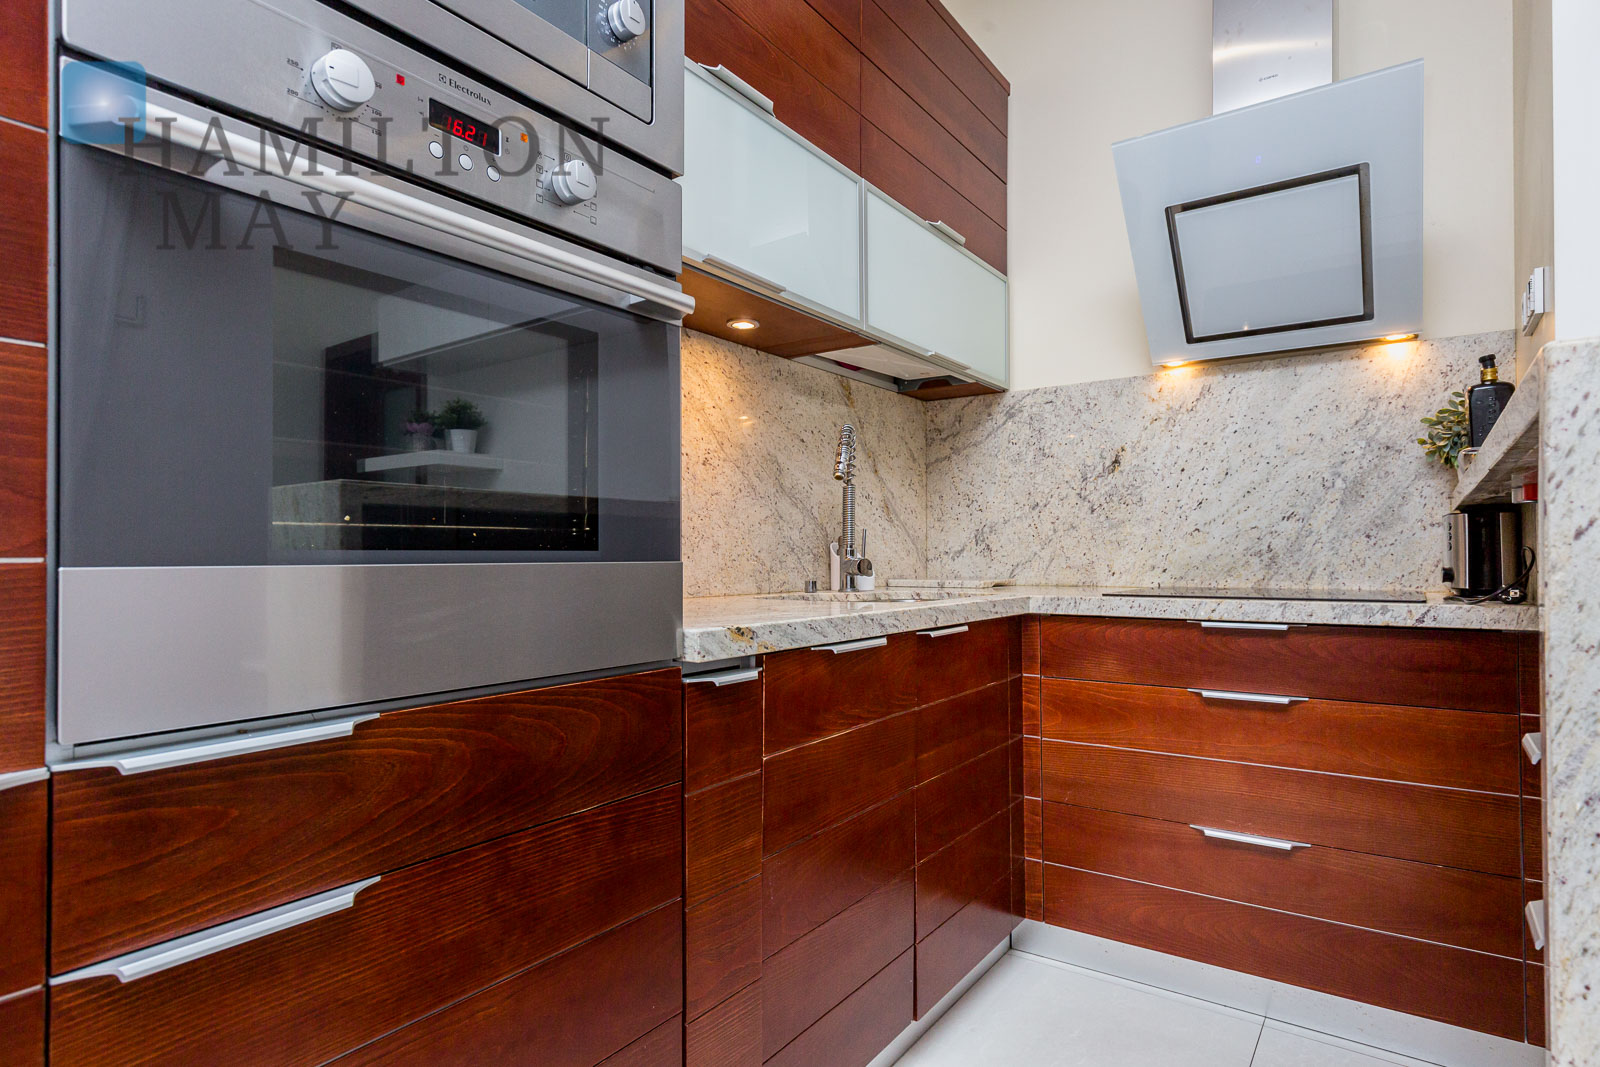 Luxurious one bedroom apartment in the Piękna Nova development Warsaw for rent